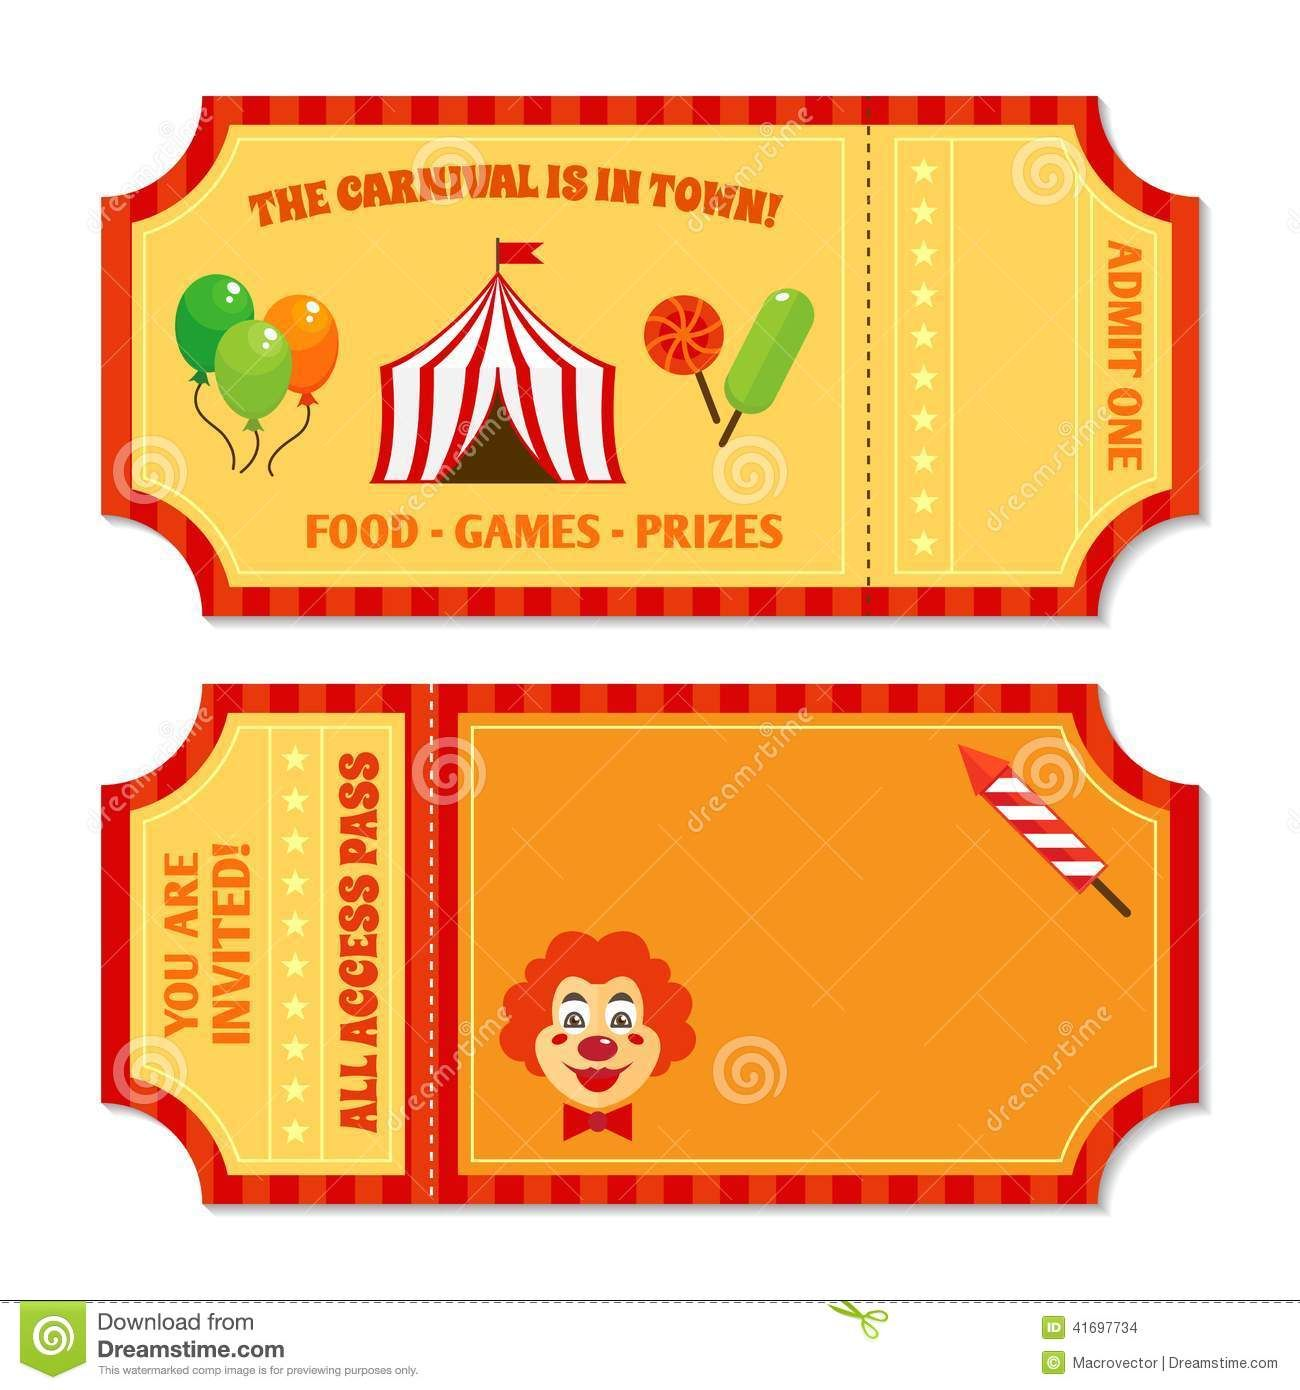 Images For > Carnival Ticket Clip Art.